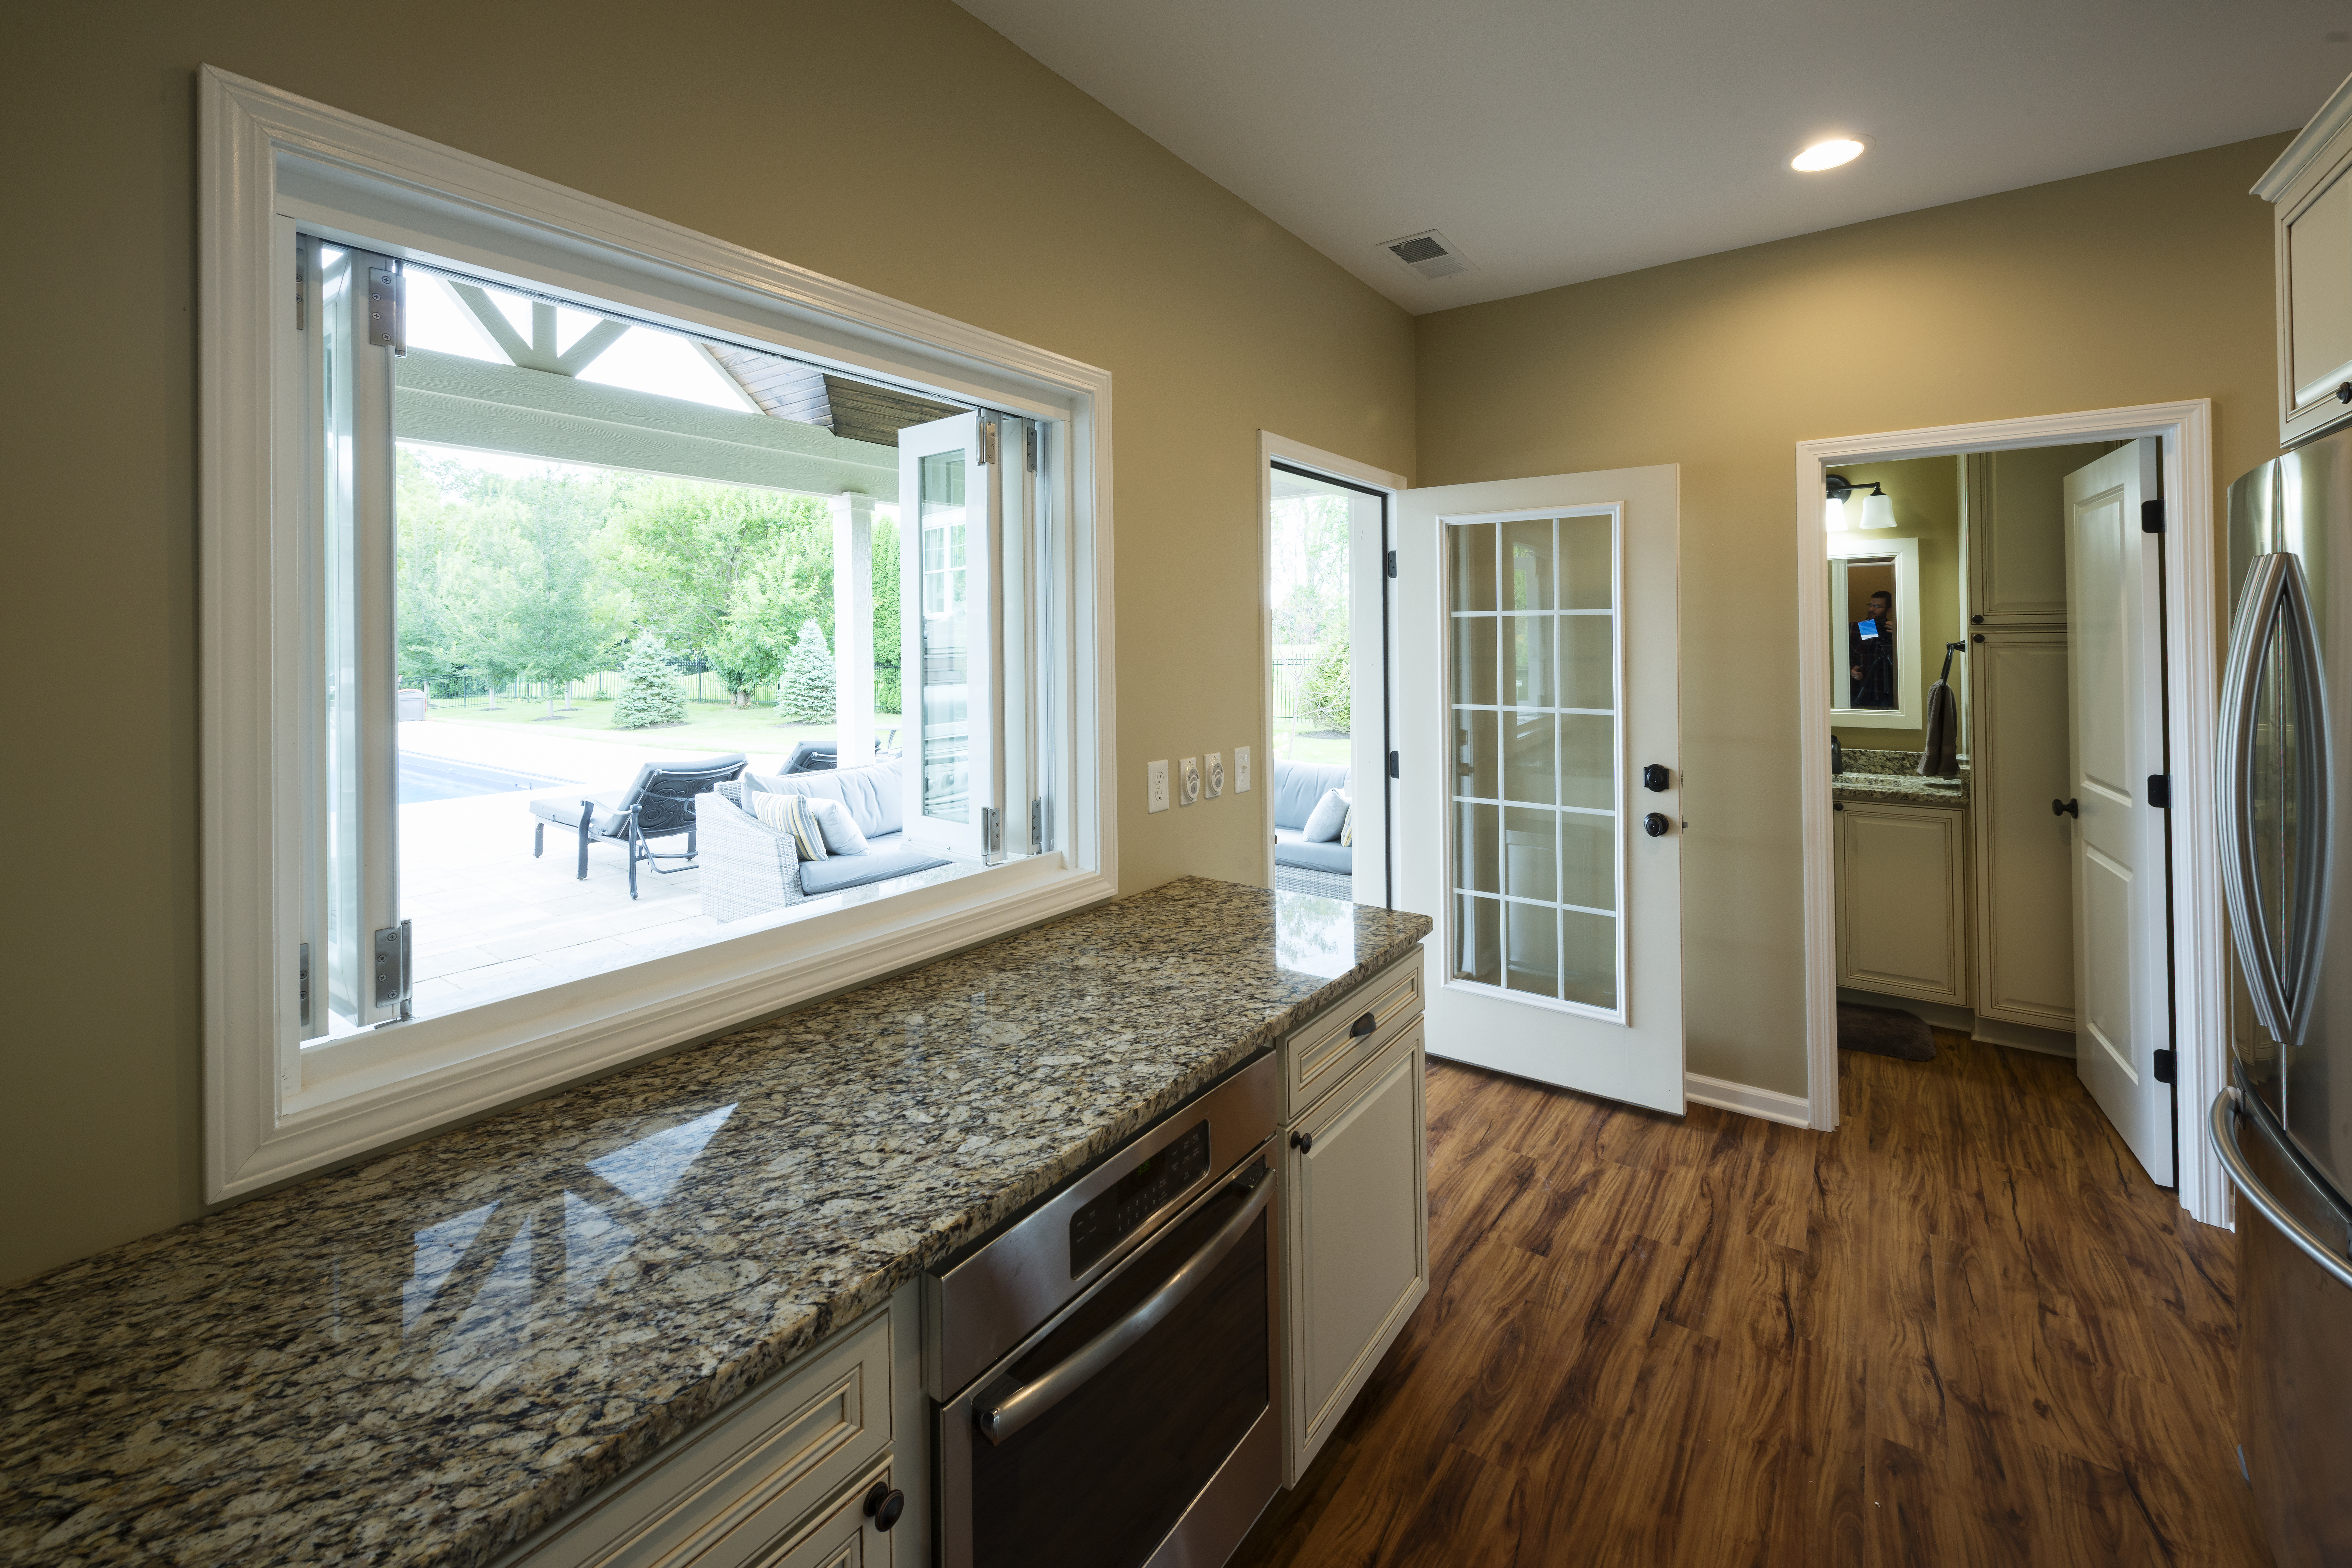 Marvelous The Pool House Is Equipped With A Full Kitchen, Half Bathroom, Shower Room  And Laundry Room.